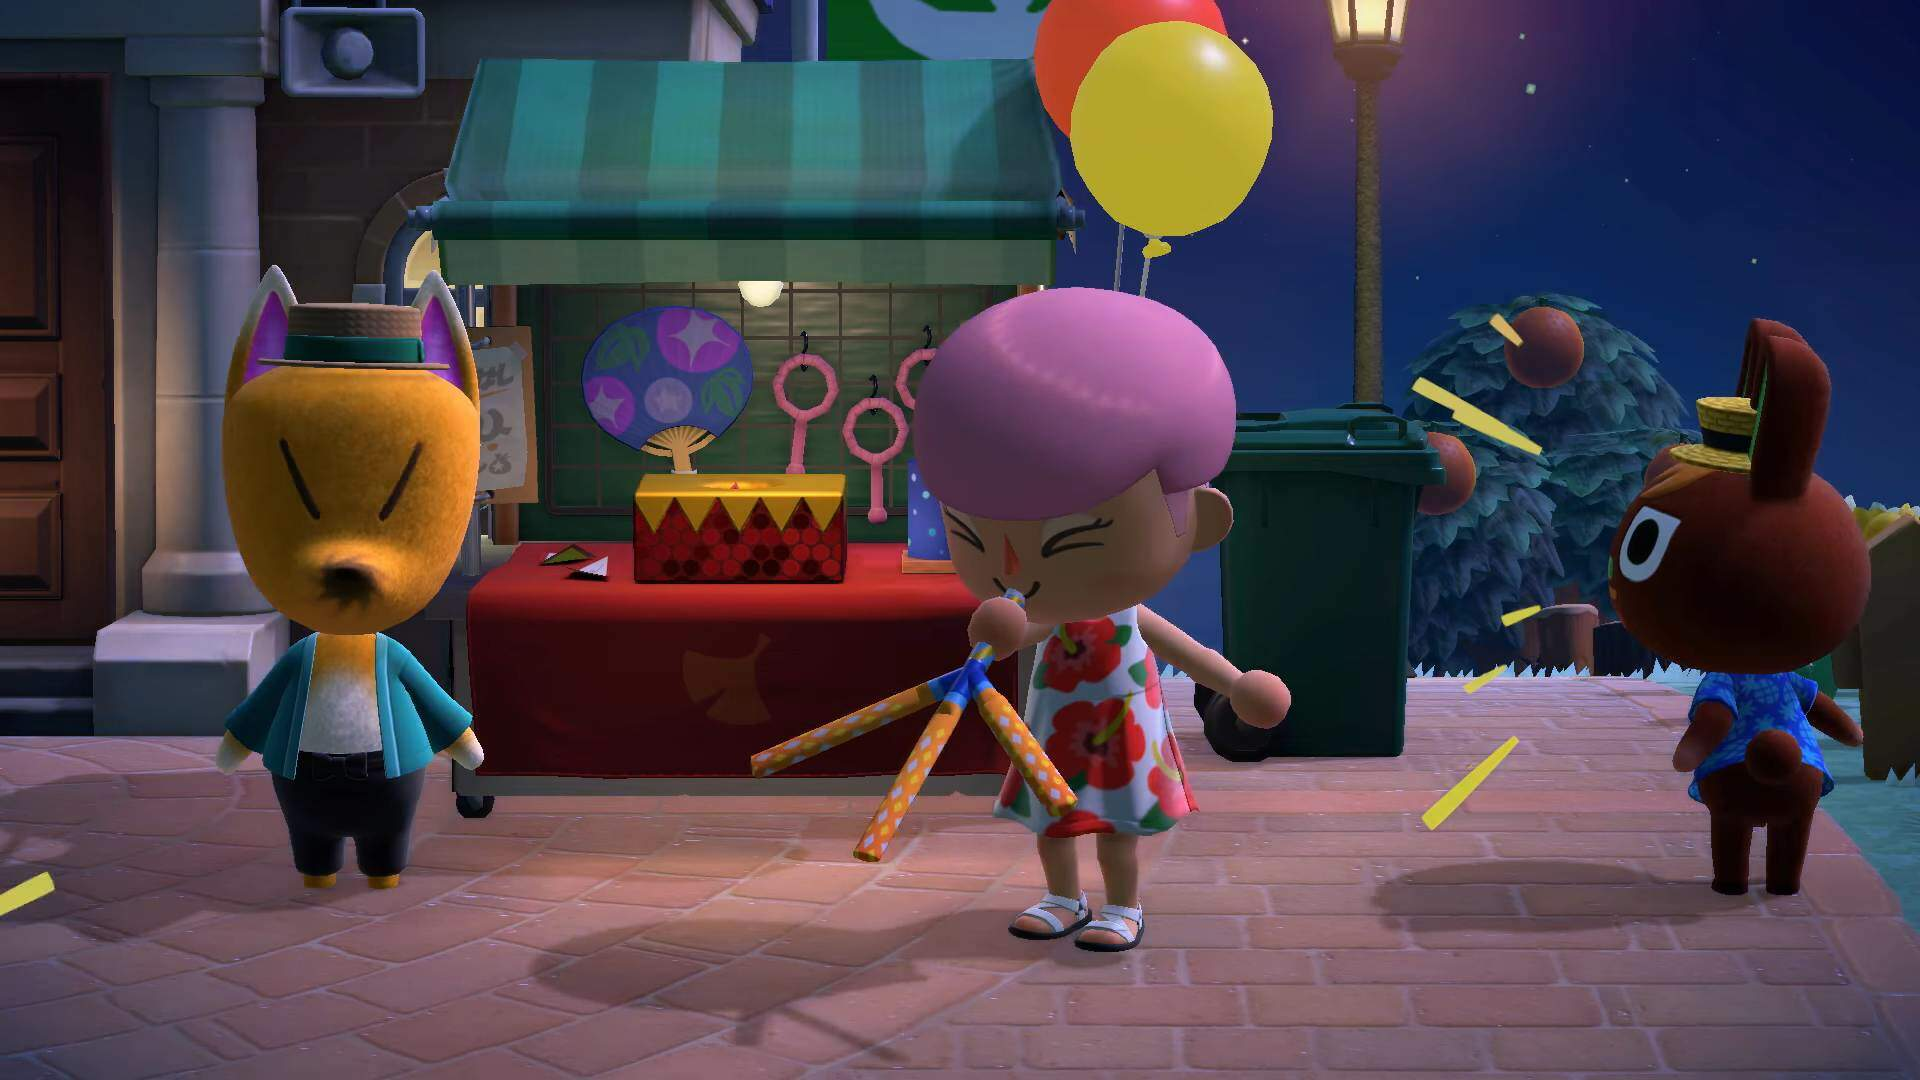 Cooking and Growing Vegetables in Animal Crossing: New Horizons Have Been Datamined